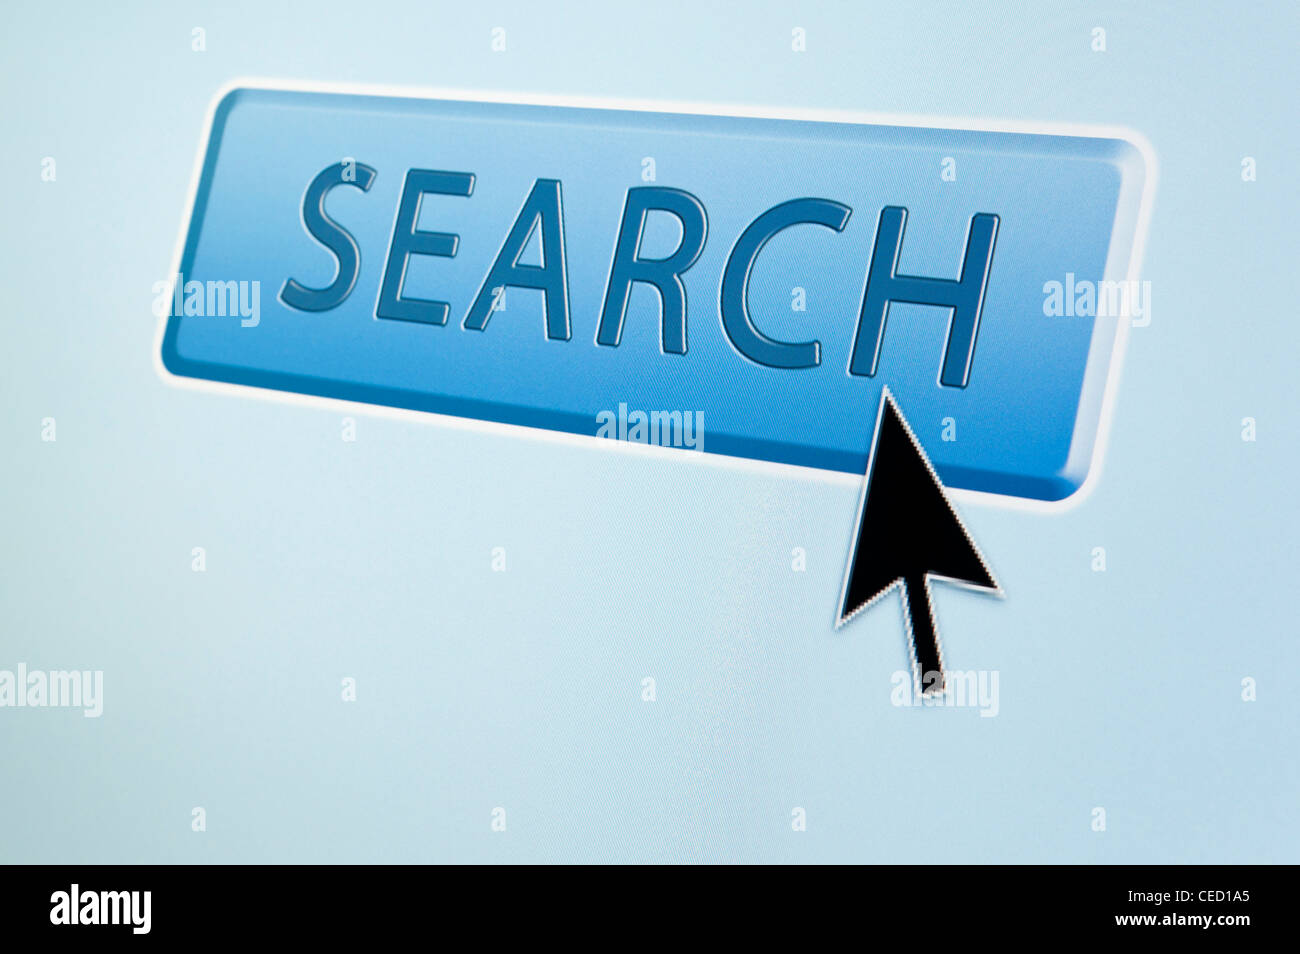 Cursor arrow hovers over an SEARCH button - Stock Image